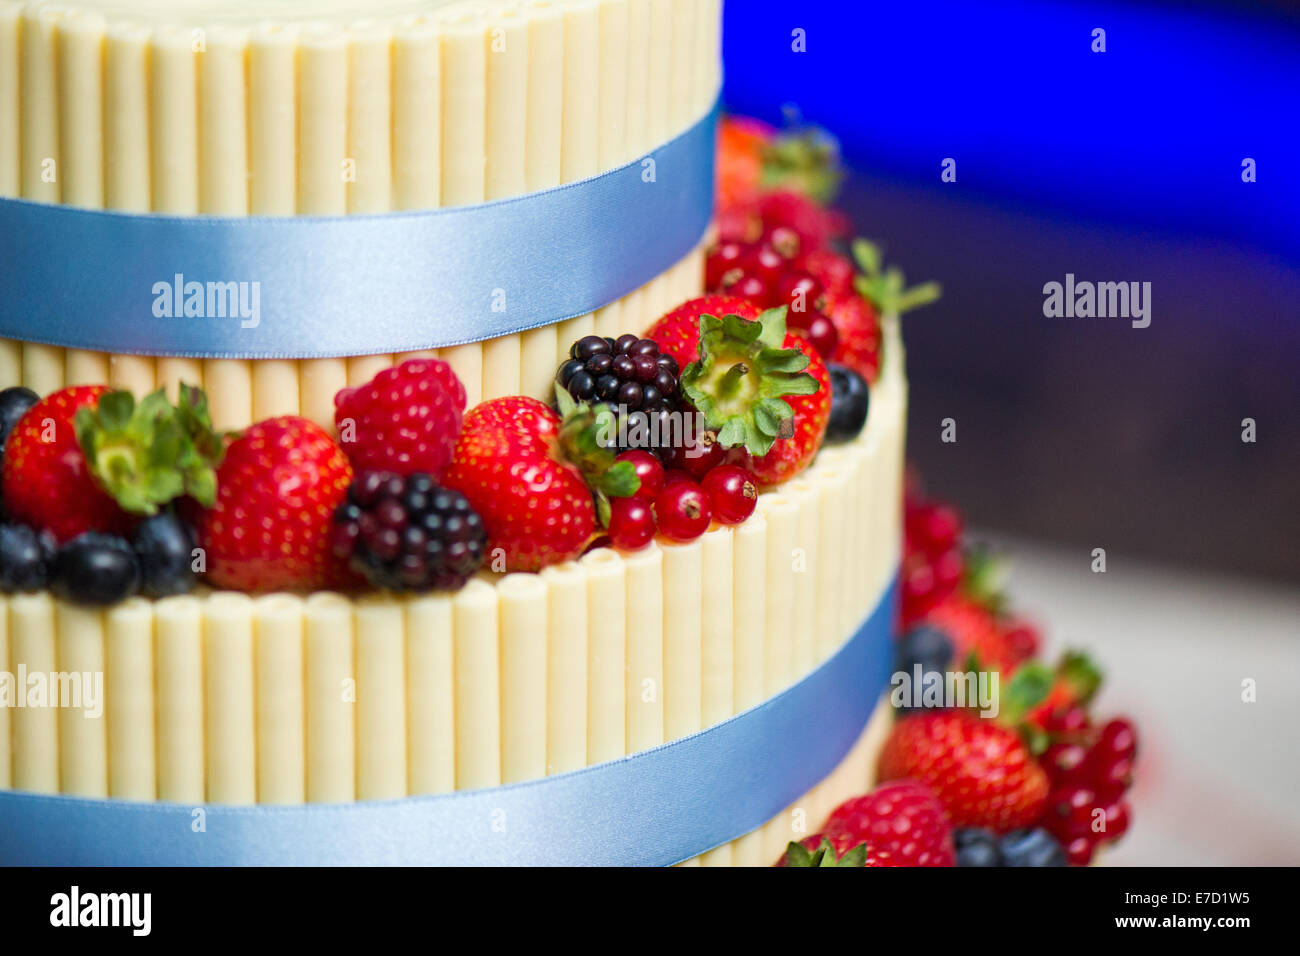 Details On A Wedding Cake Summer Berry Fruits And White